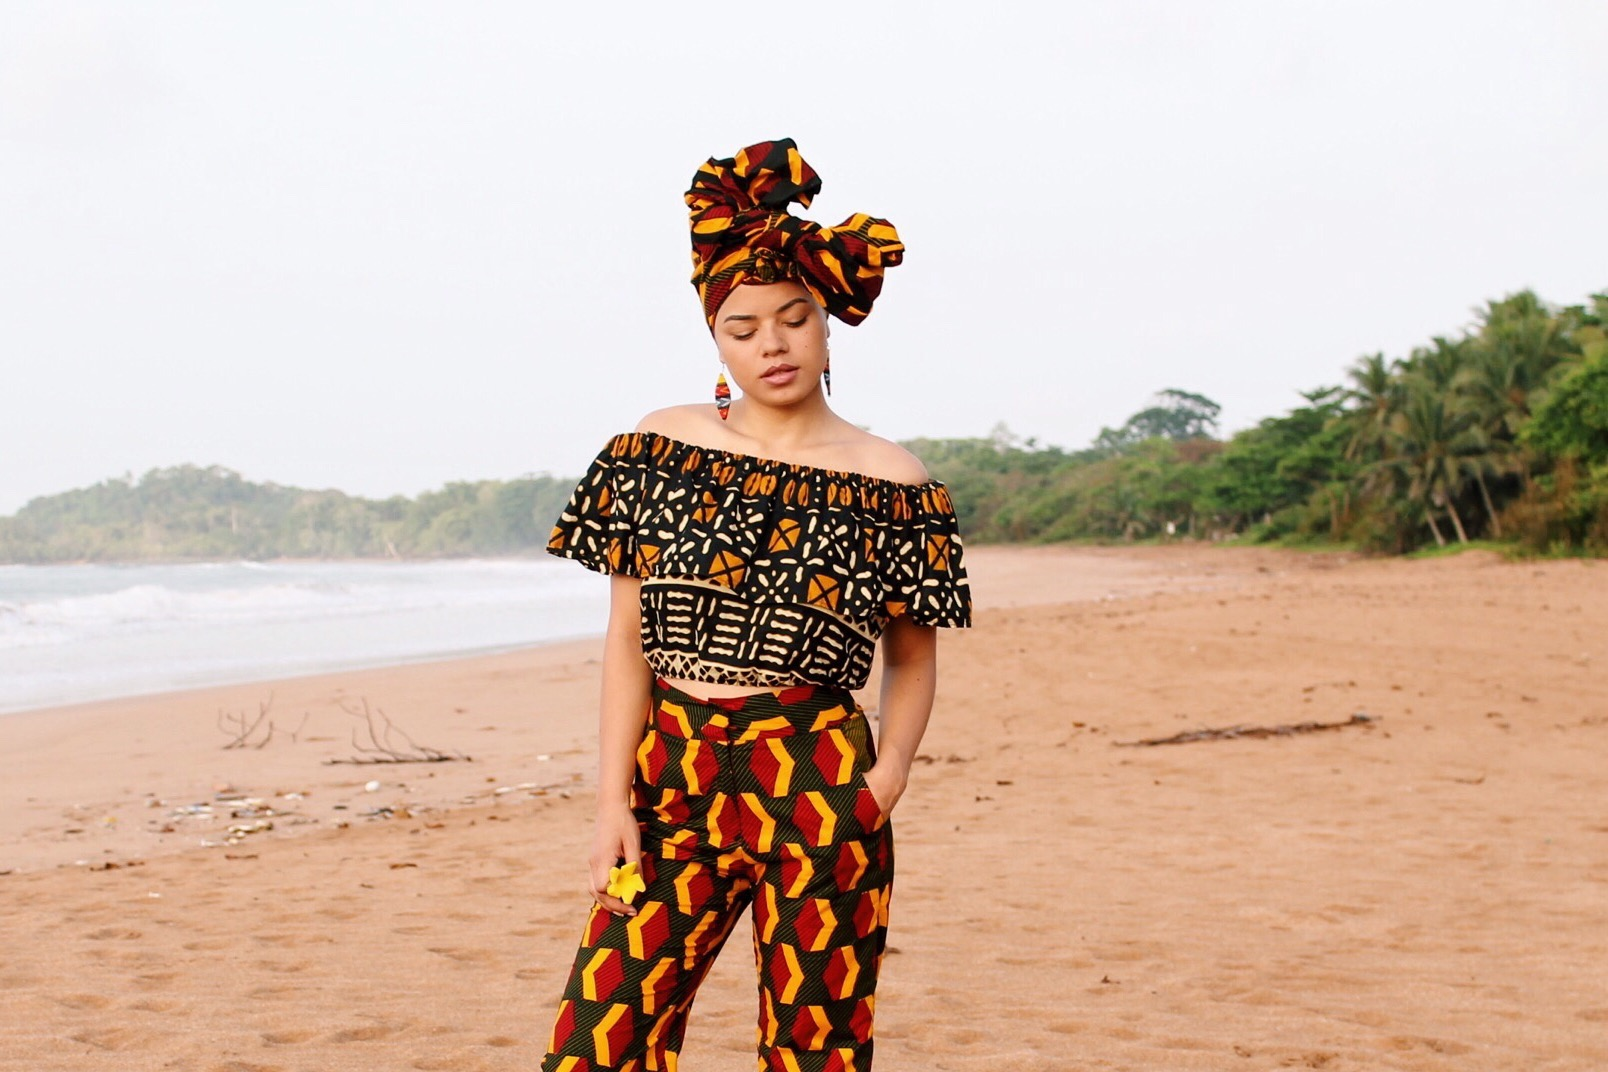 the finish in Vlisco